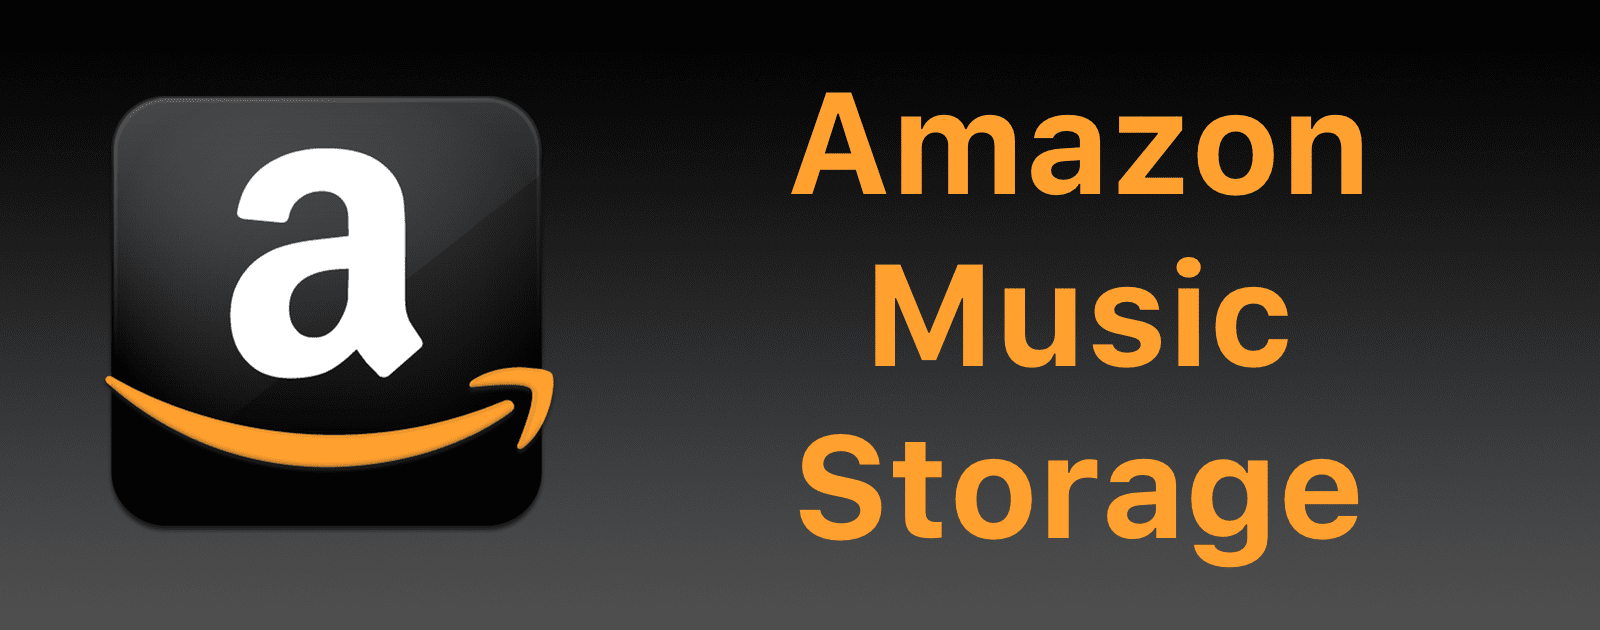 Amazon Music Sonos Amazon Music Storage Is Ending Here S What You Can Do The Mac